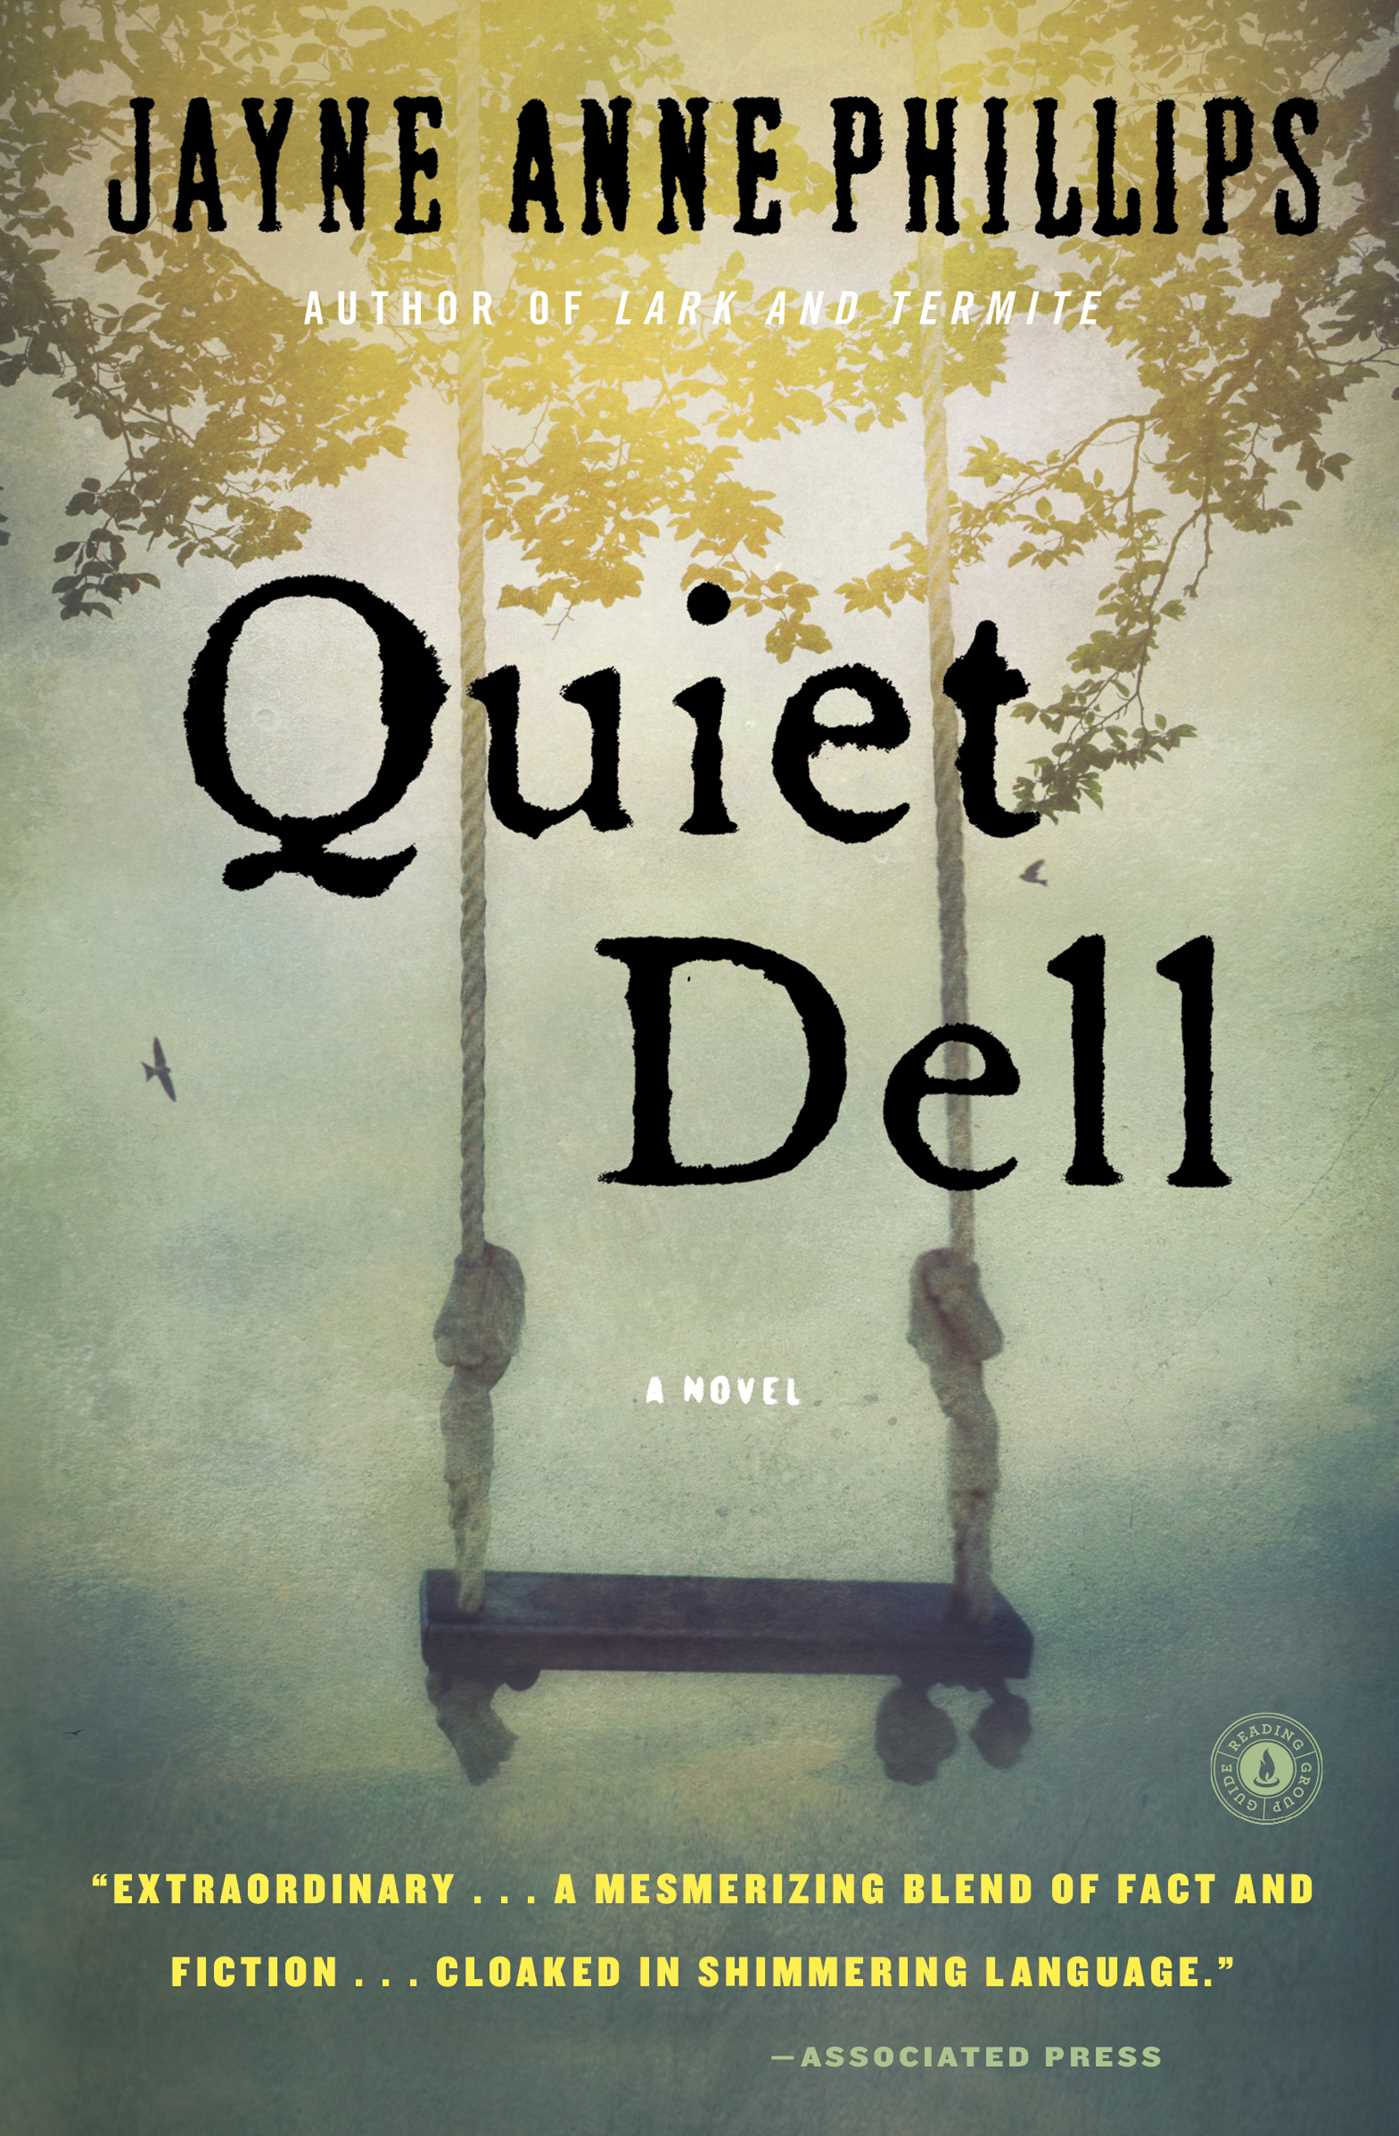 Quiet-dell-9781439172544_hr